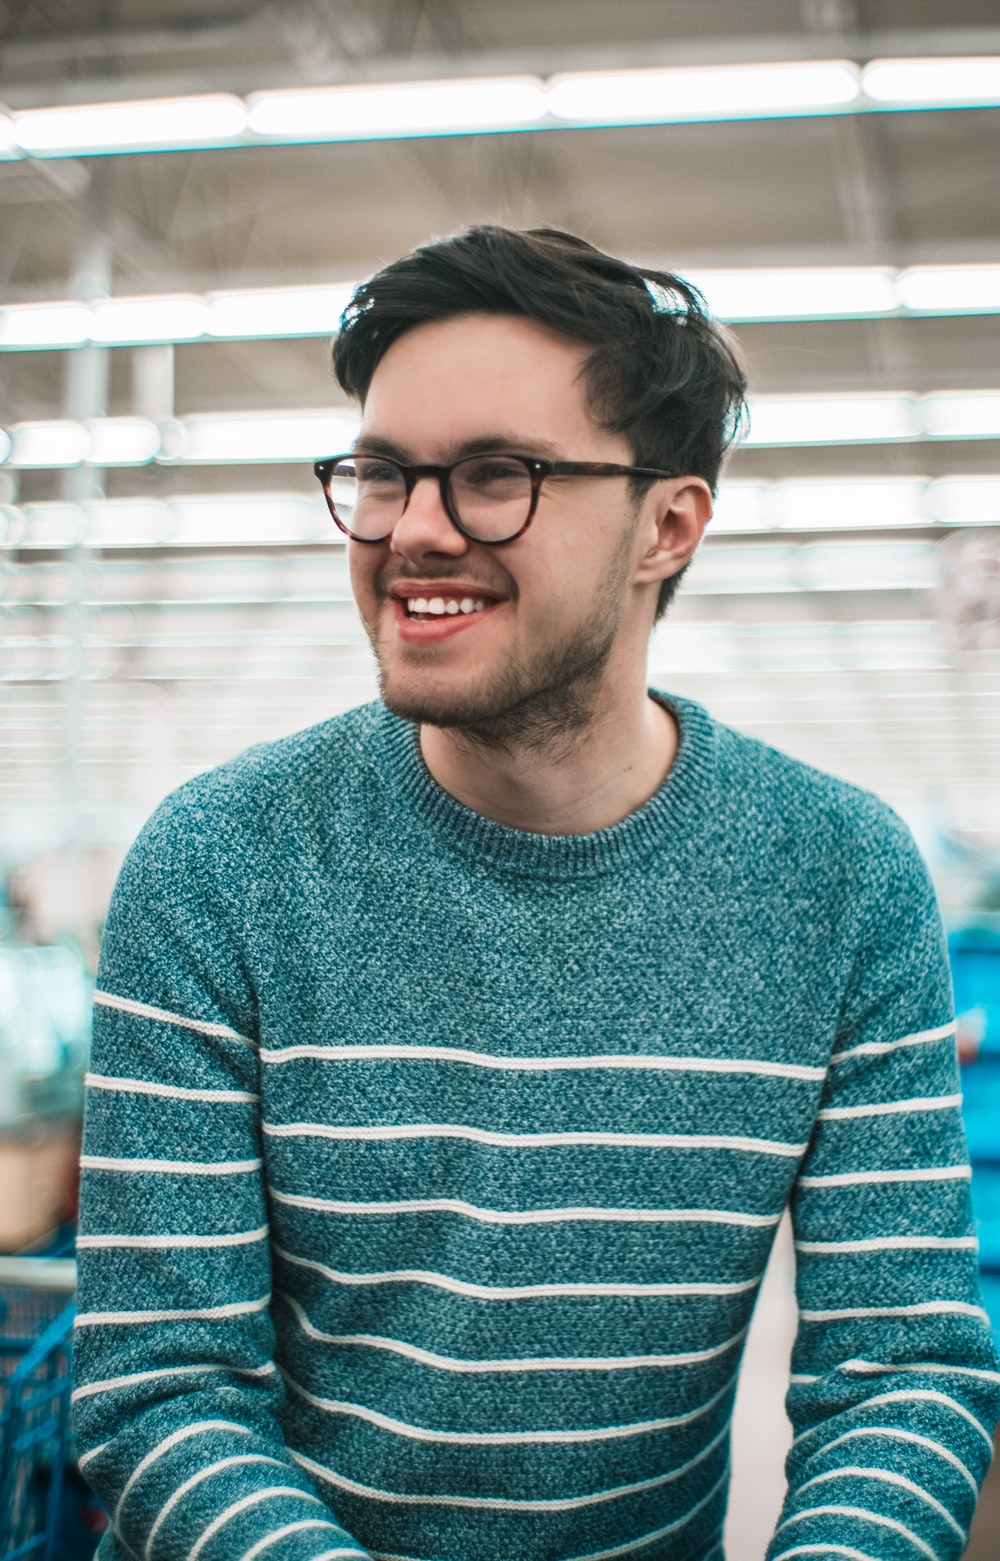 man wearing green and white striped long-sleeved sweatshirt